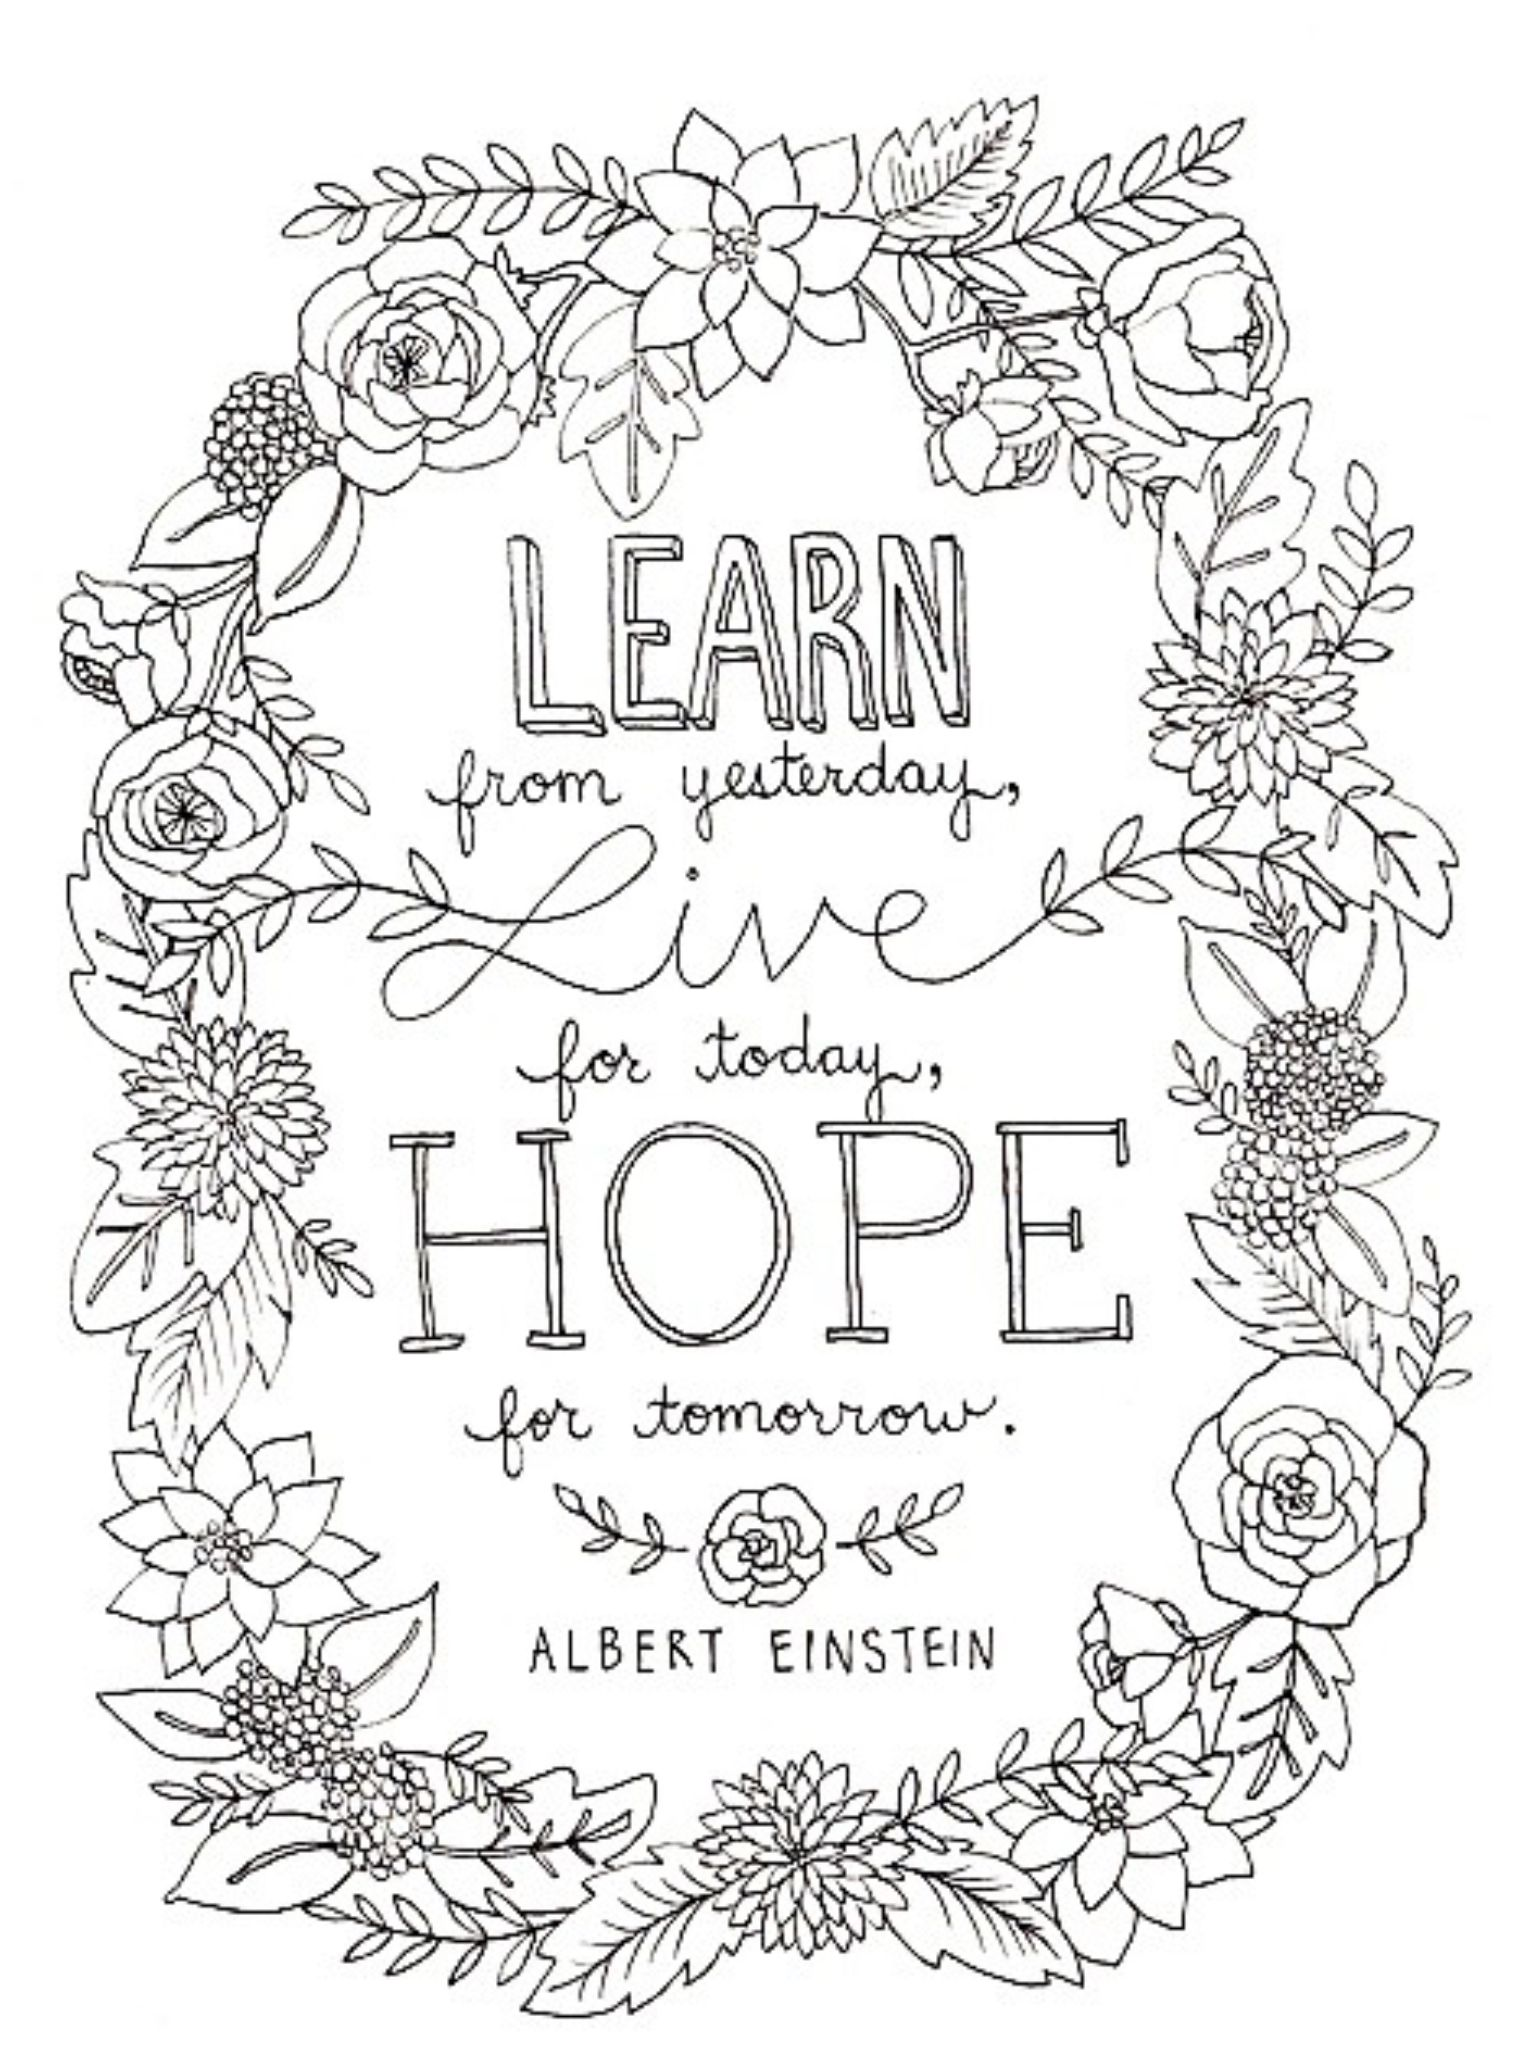 Albert Einstein Quote Quote Coloring Pages Printable Coloring